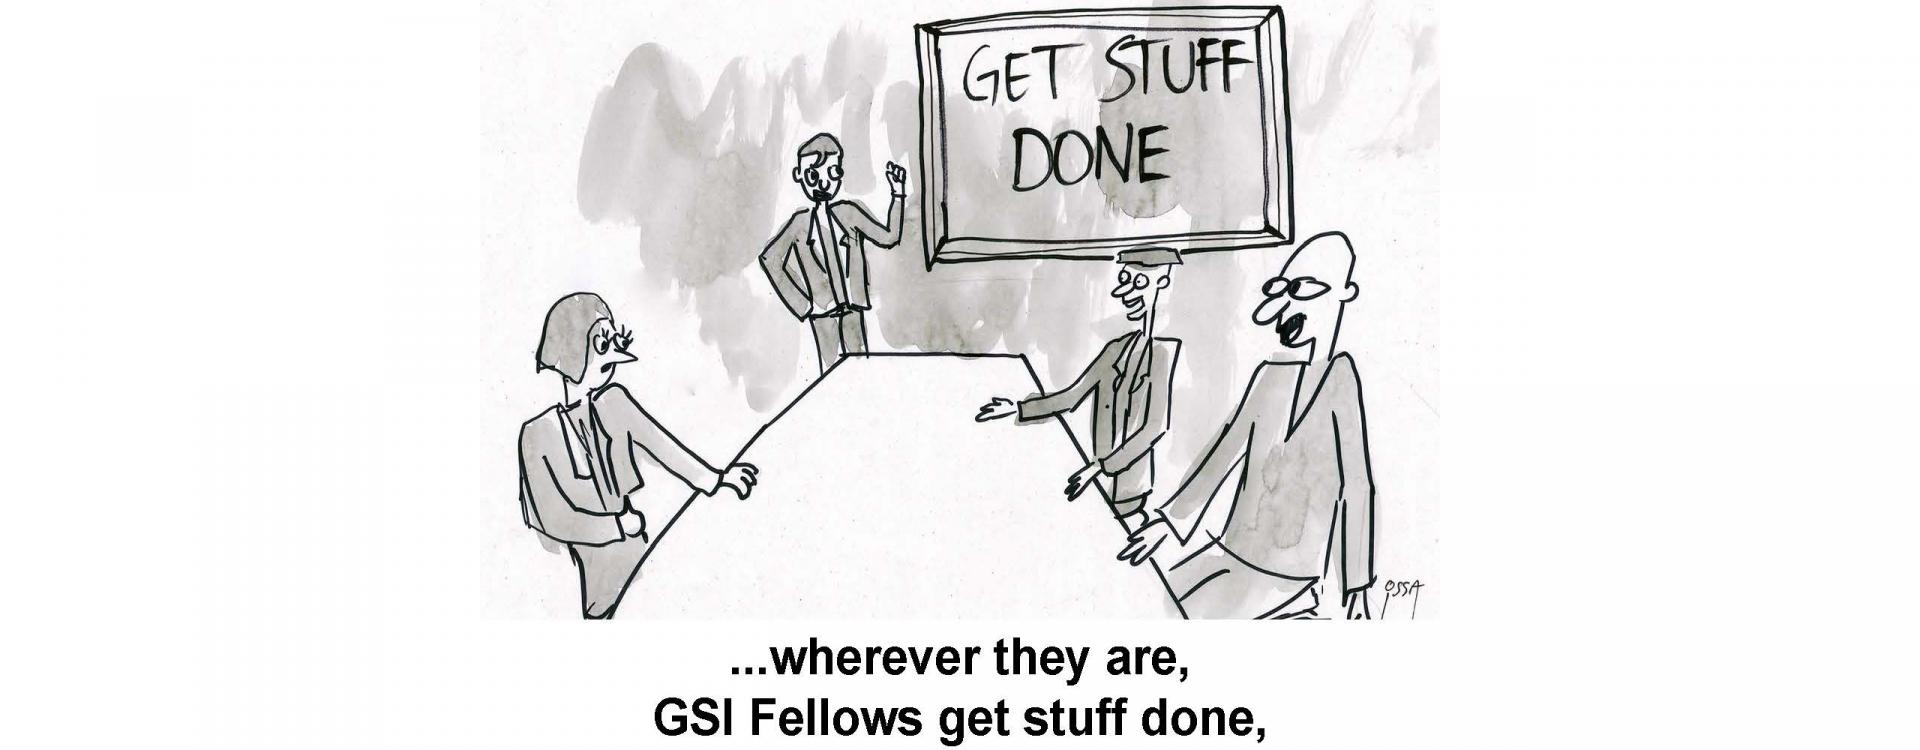 wherever they are, GSI Fellows get stuff done,